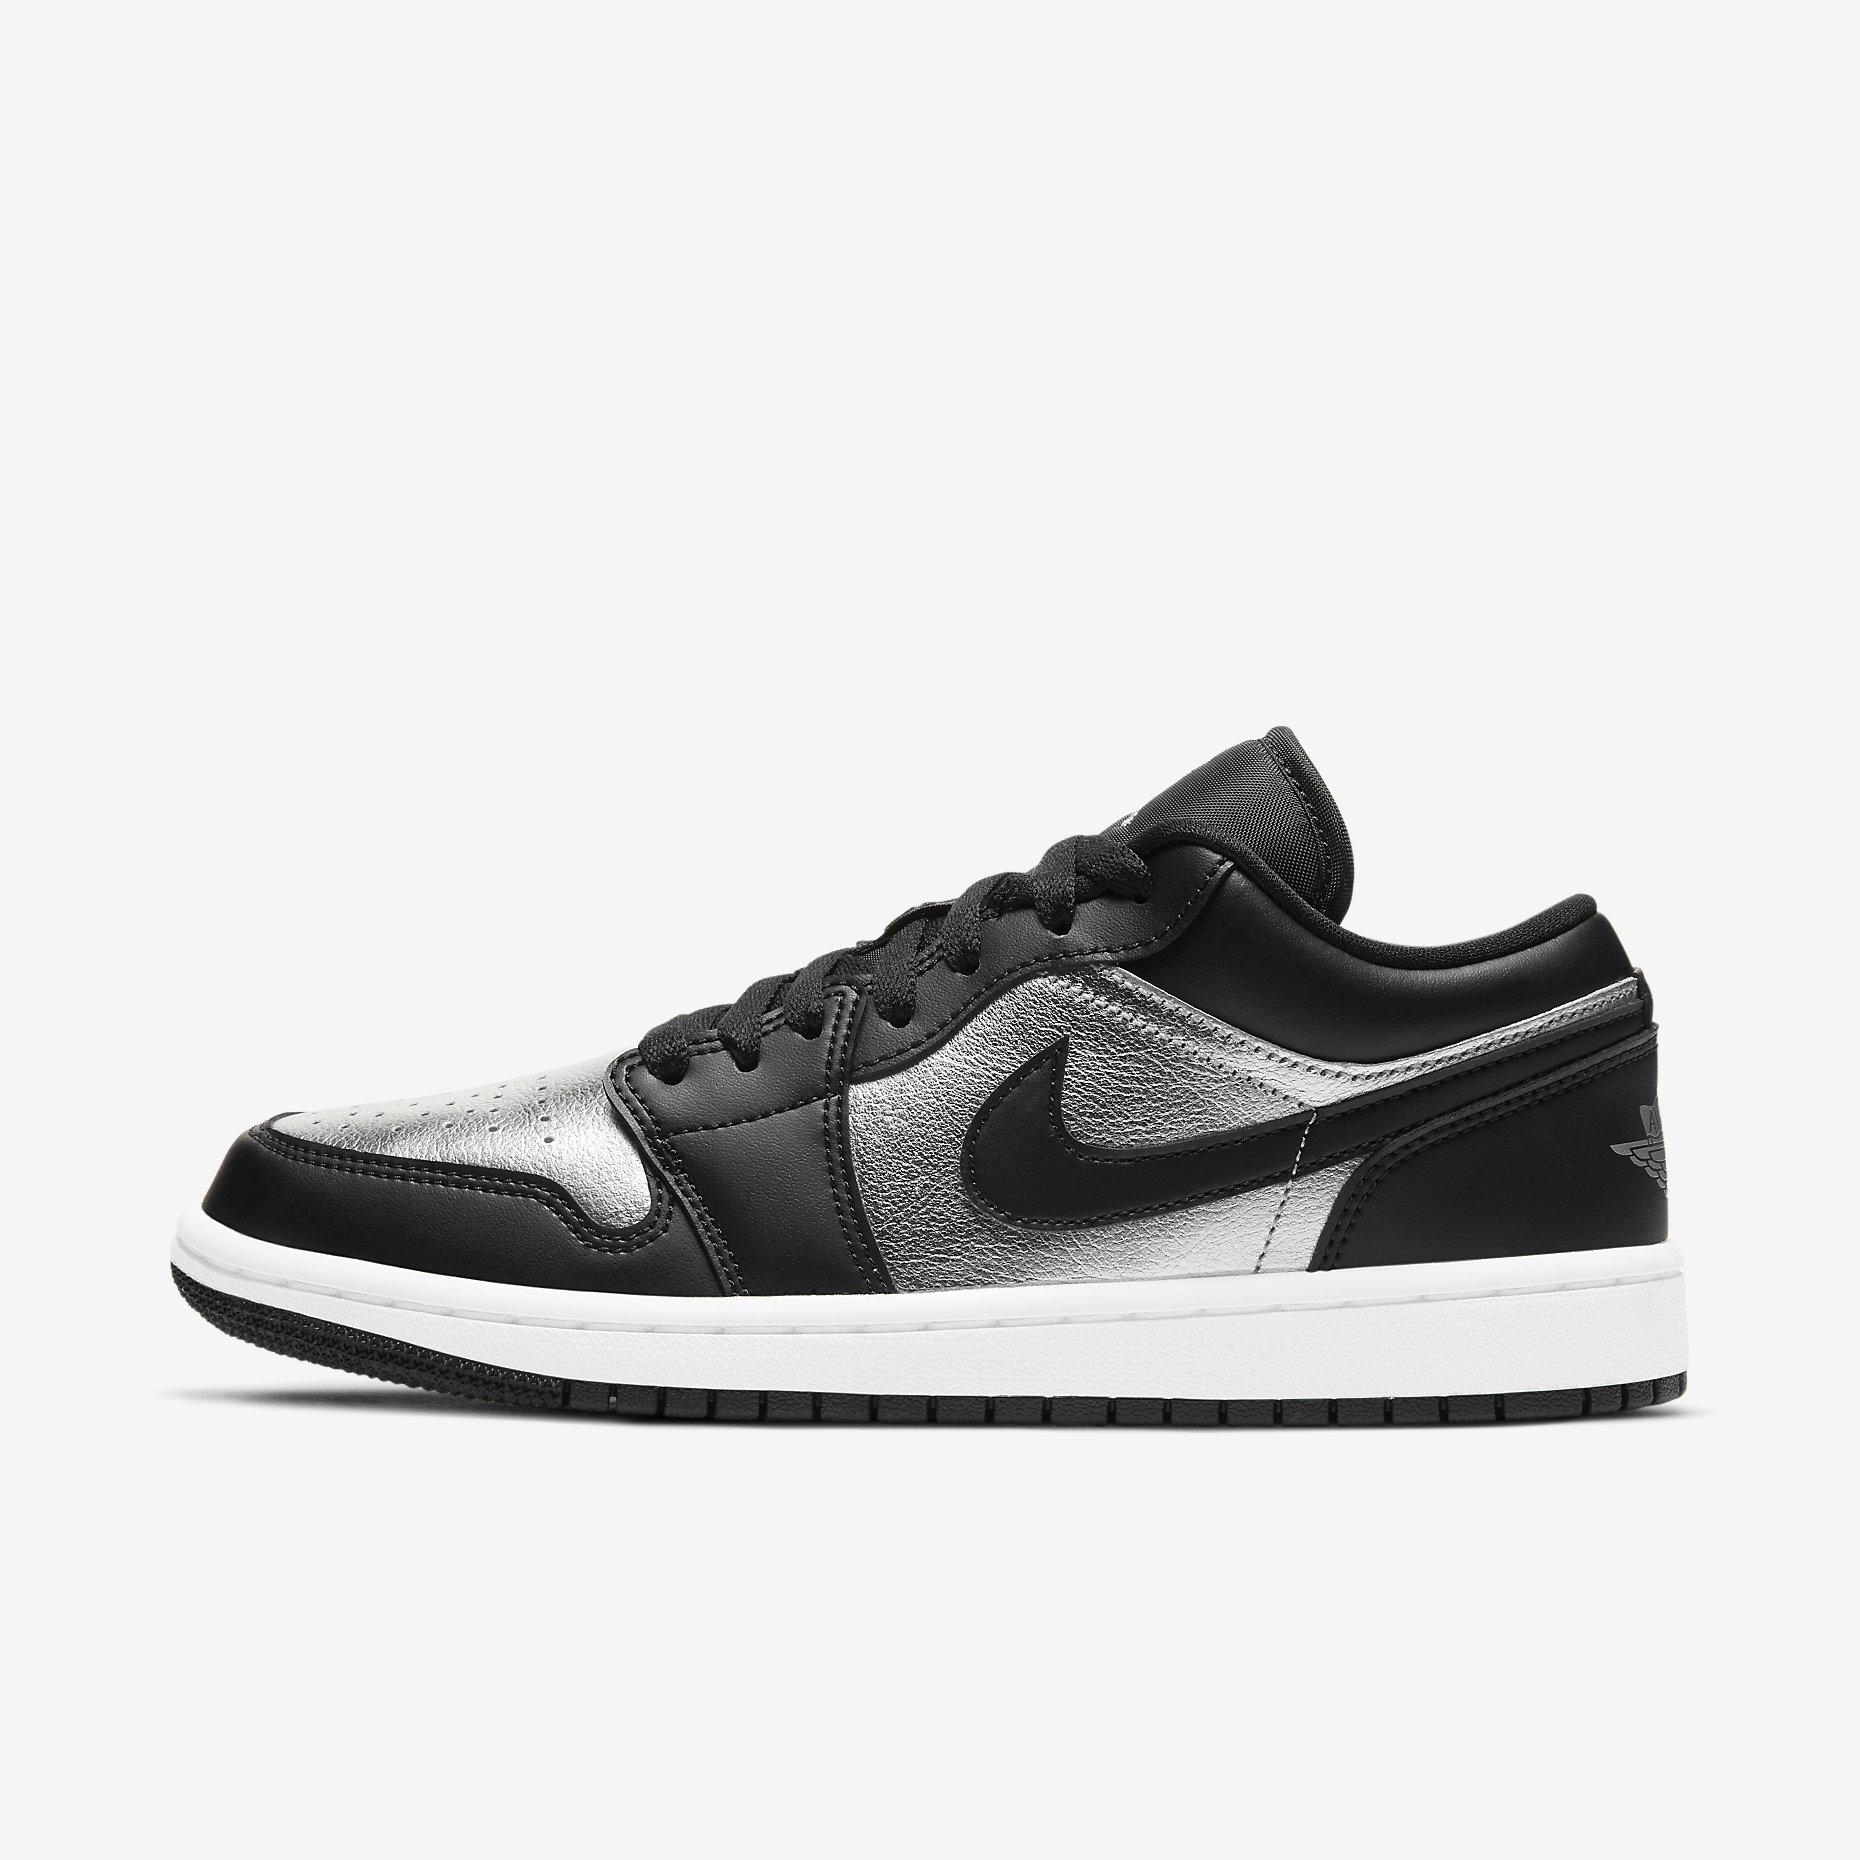 Women's Air Jordan 1 Low SE 'Black/Metallic Silver'}